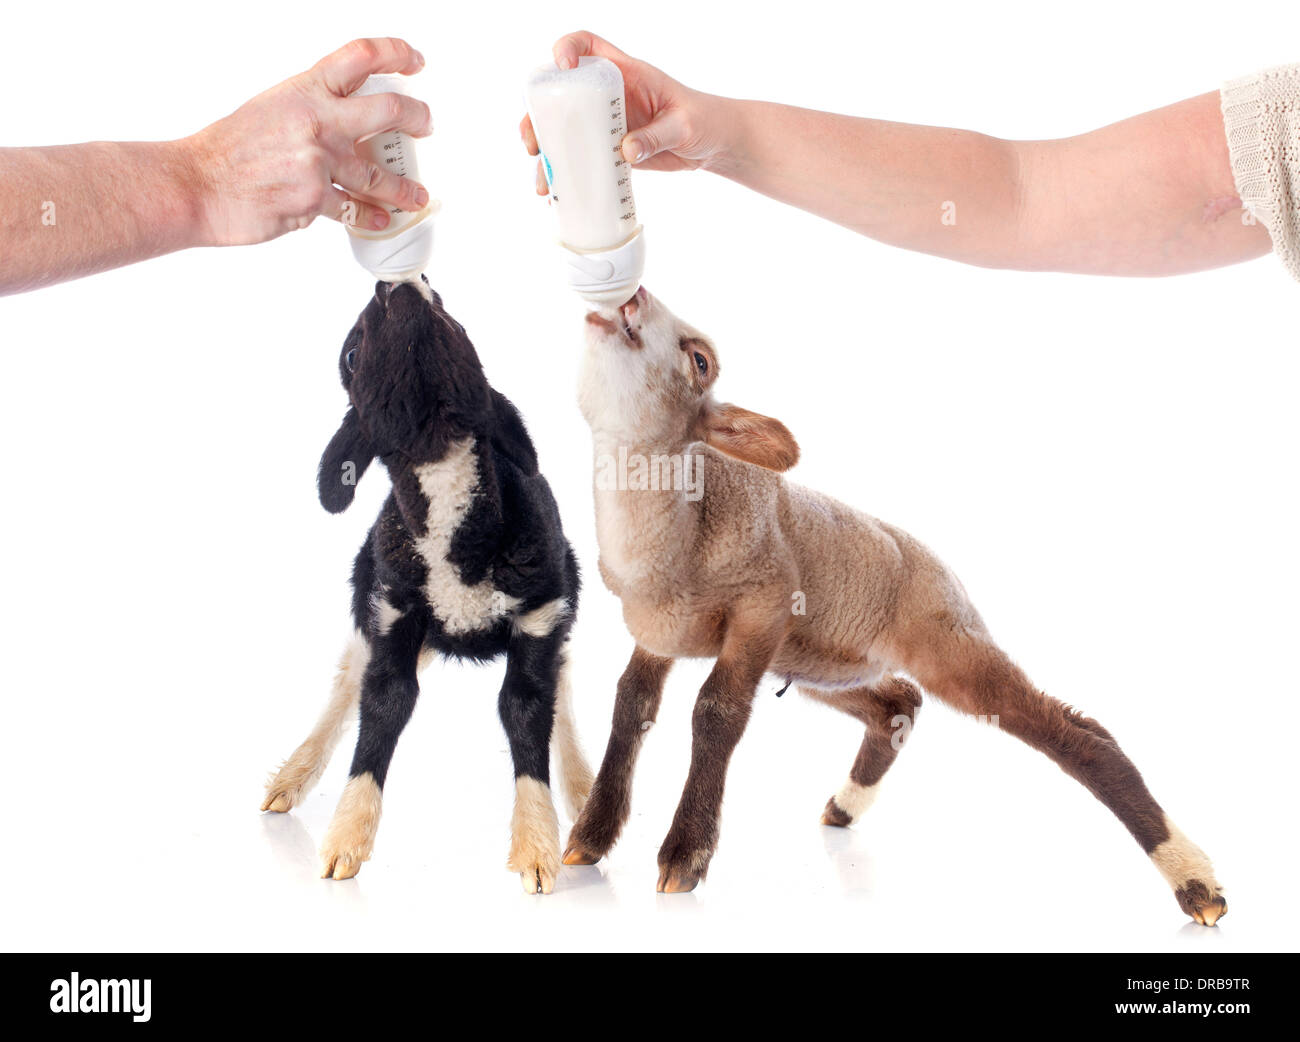 young lamb sucking a bottle feed in front of white background - Stock Image